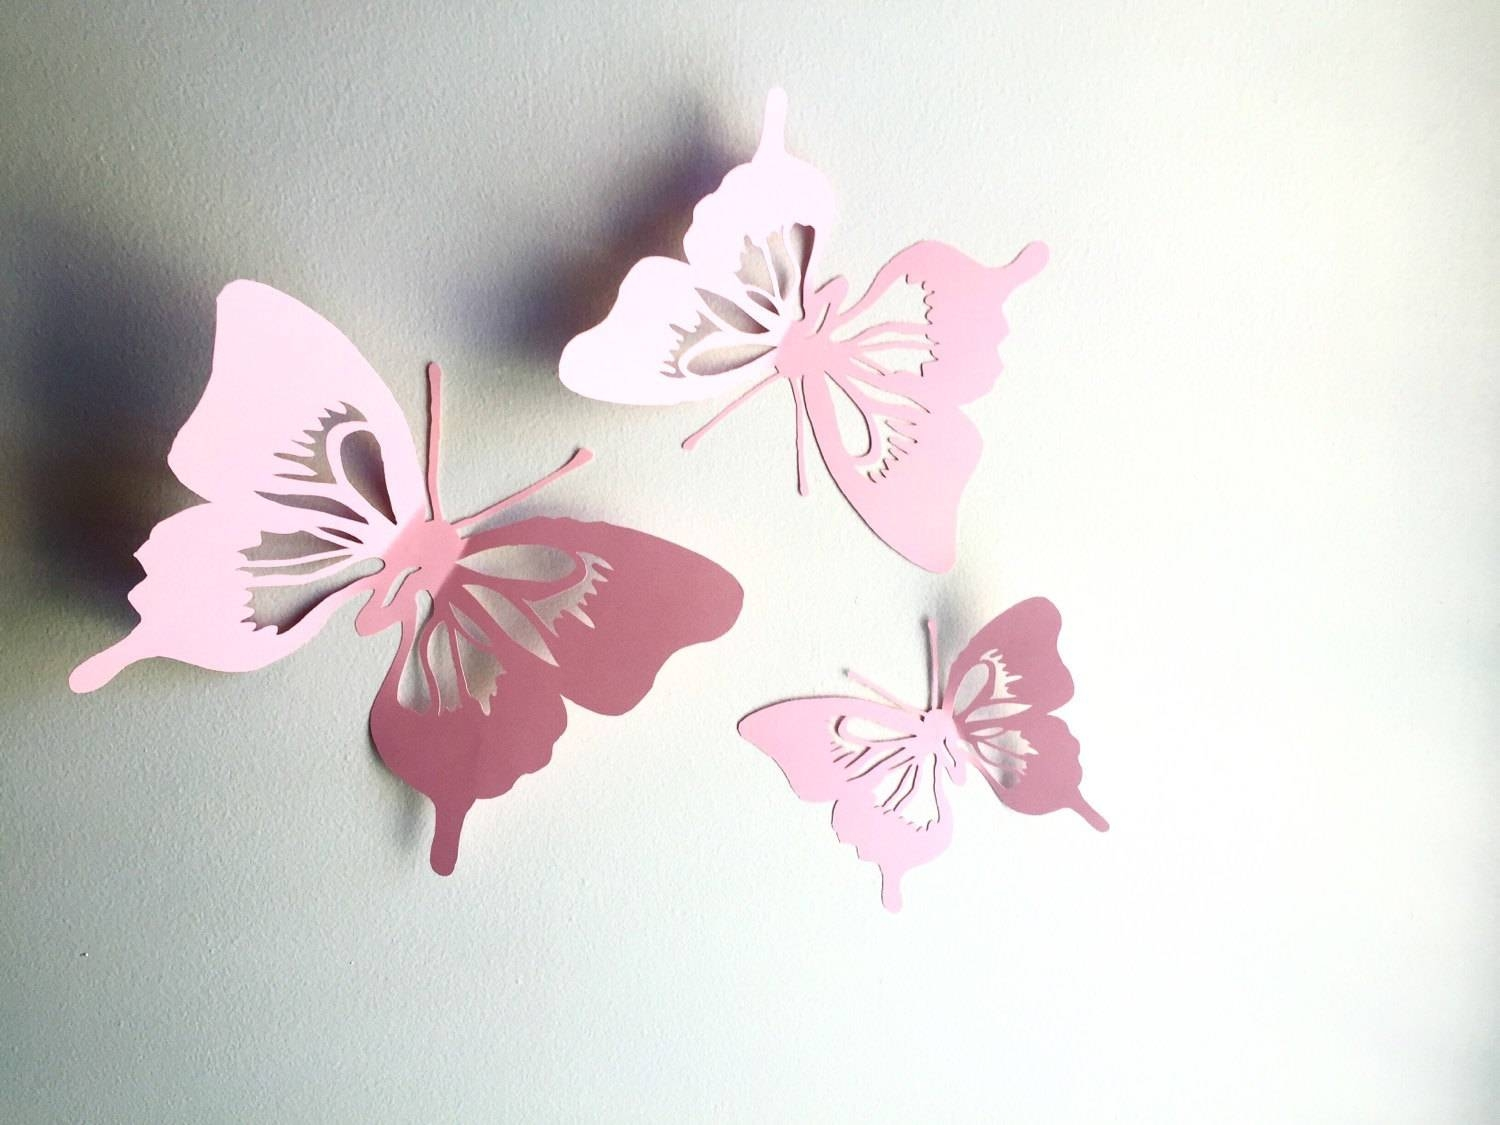 3d Paper Butterfly Wall Art Paper Wall Cut Out Butterfly With Most Popular Butterflies 3d Wall Art (View 14 of 20)